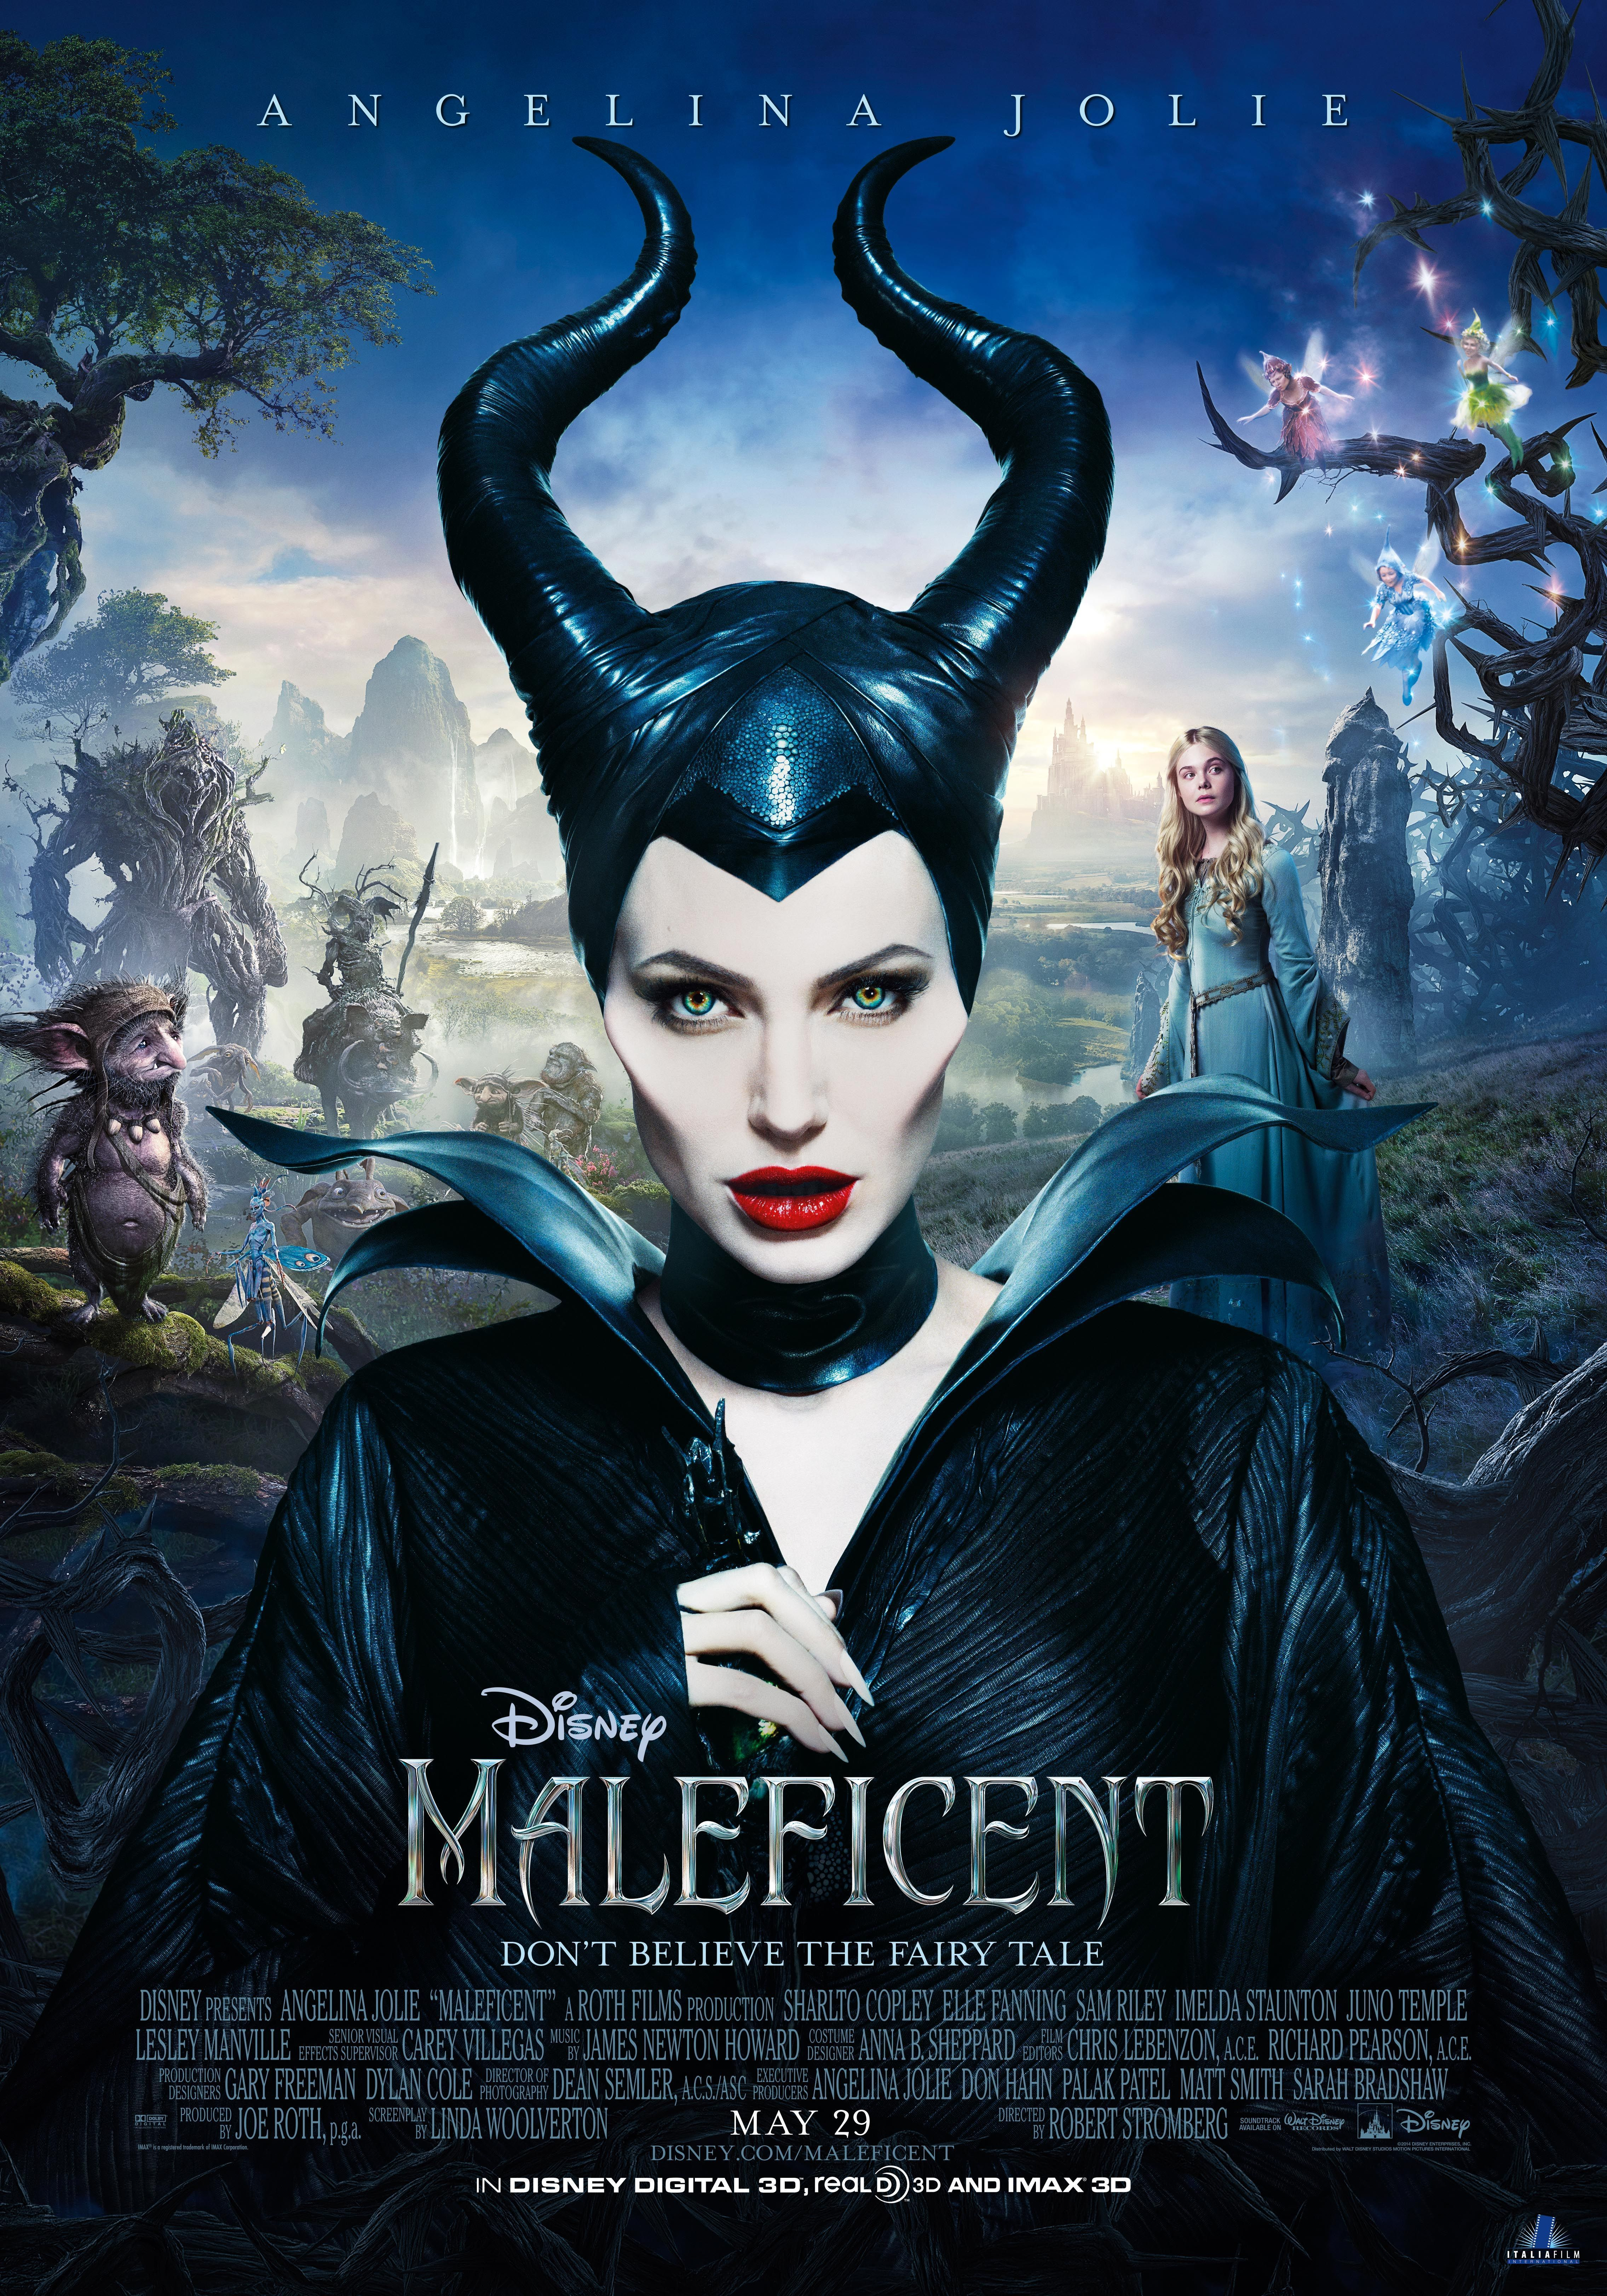 Angelina Jolie is MALEFICENT in Theaters in 3D, 5/29